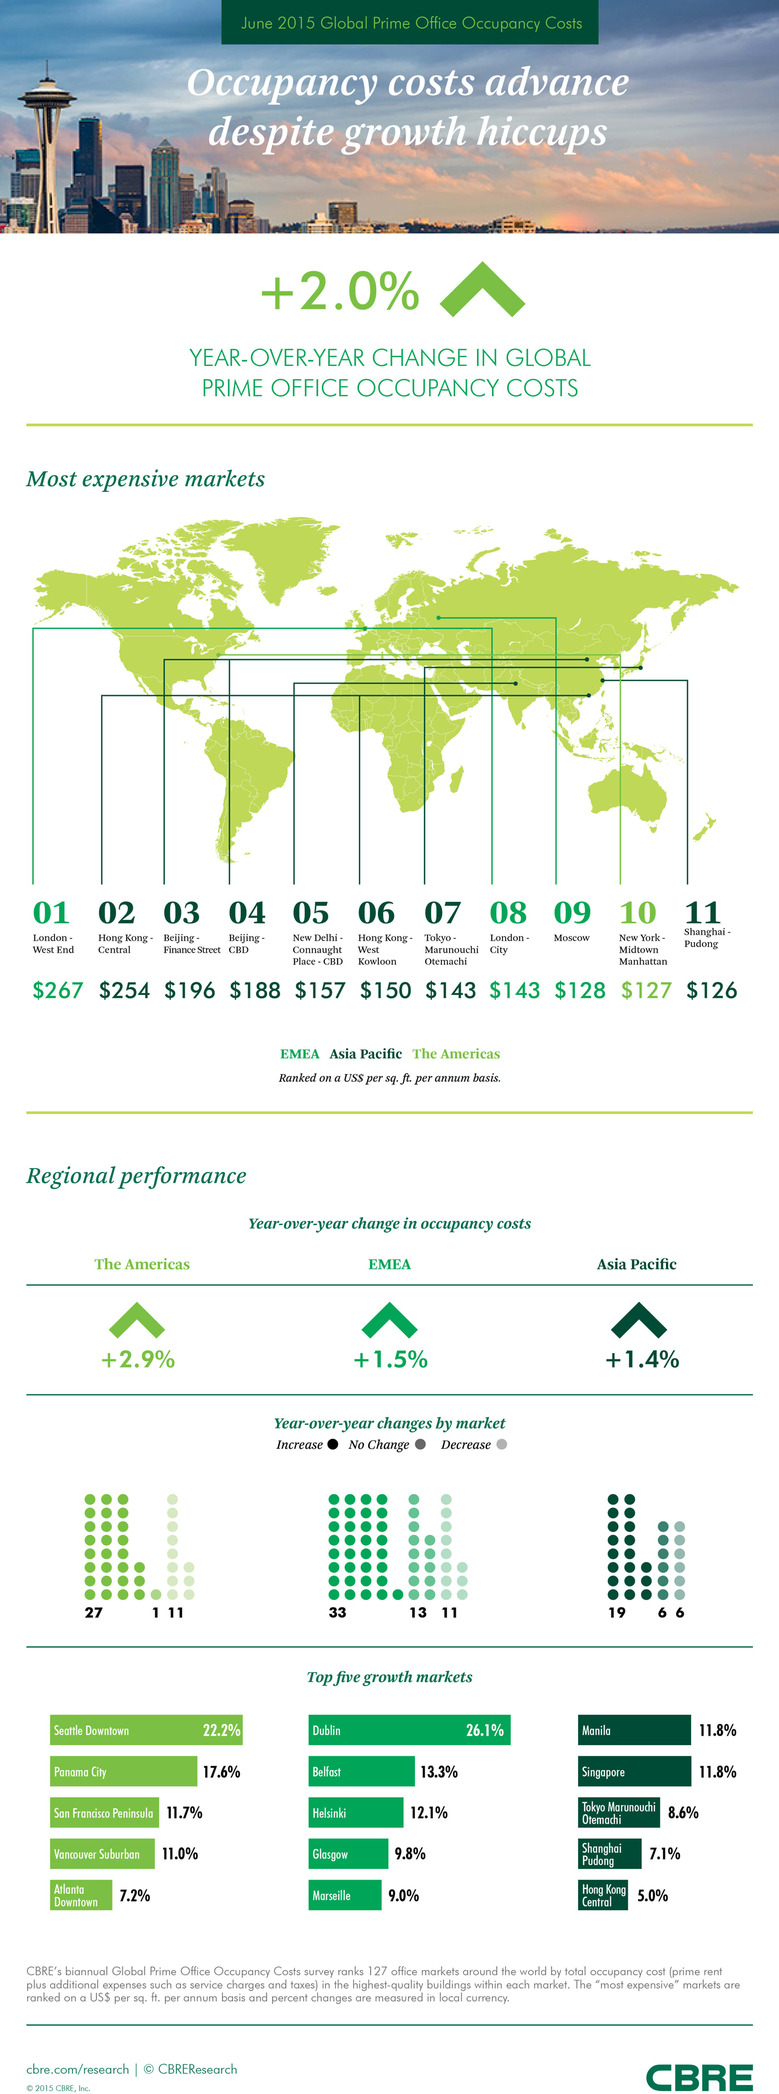 June-2015-Global-Prime-Office-Occupancy-Costs-CBRE.jpg